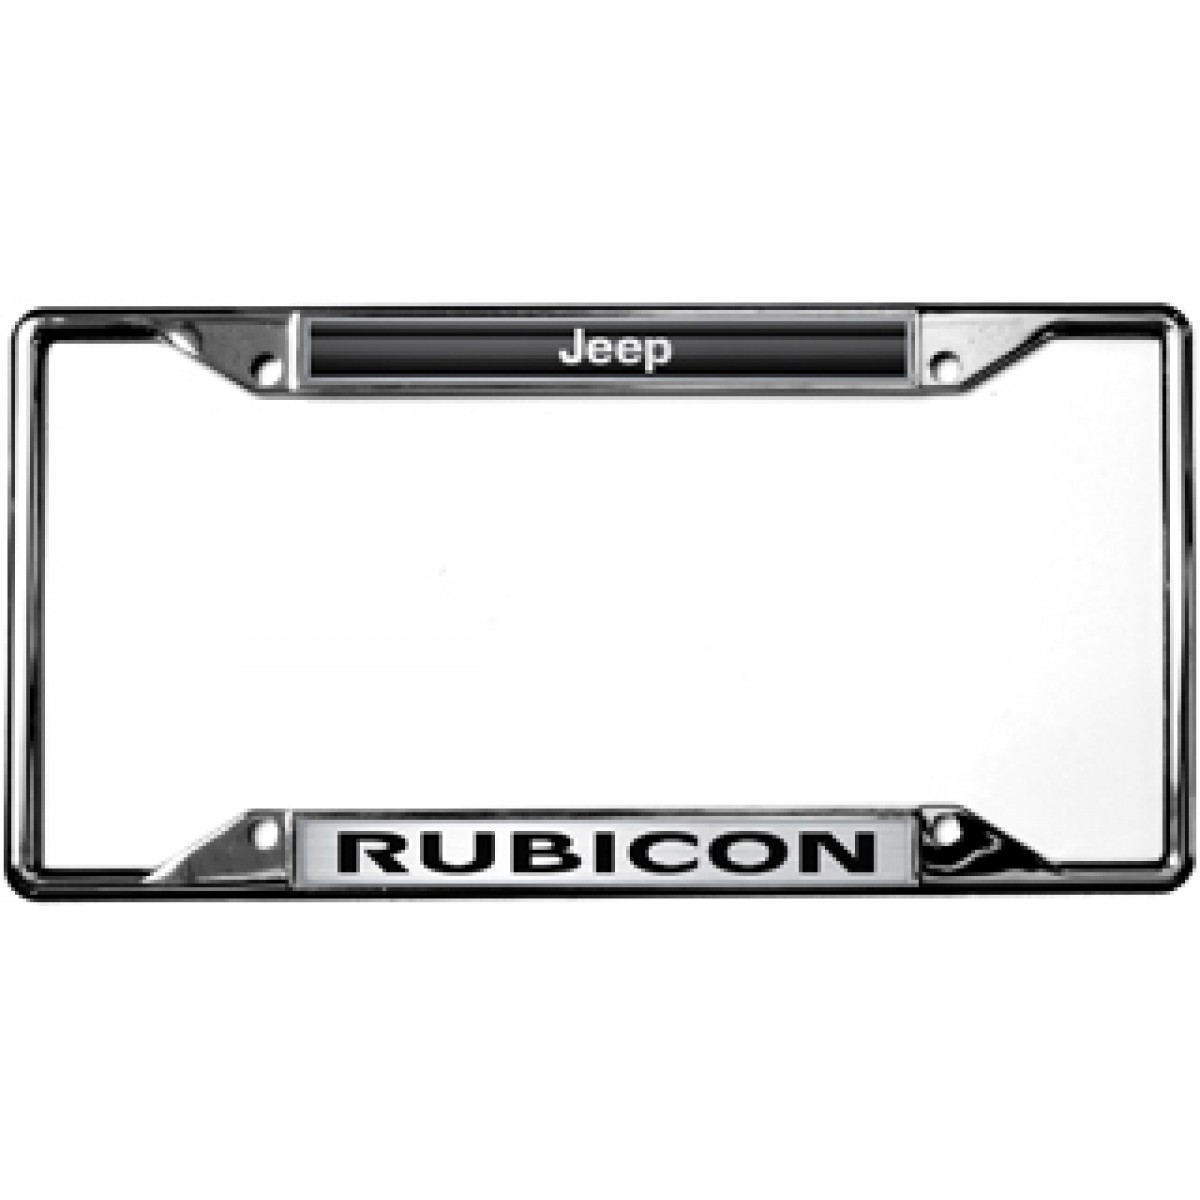 Jeep license plates and frames